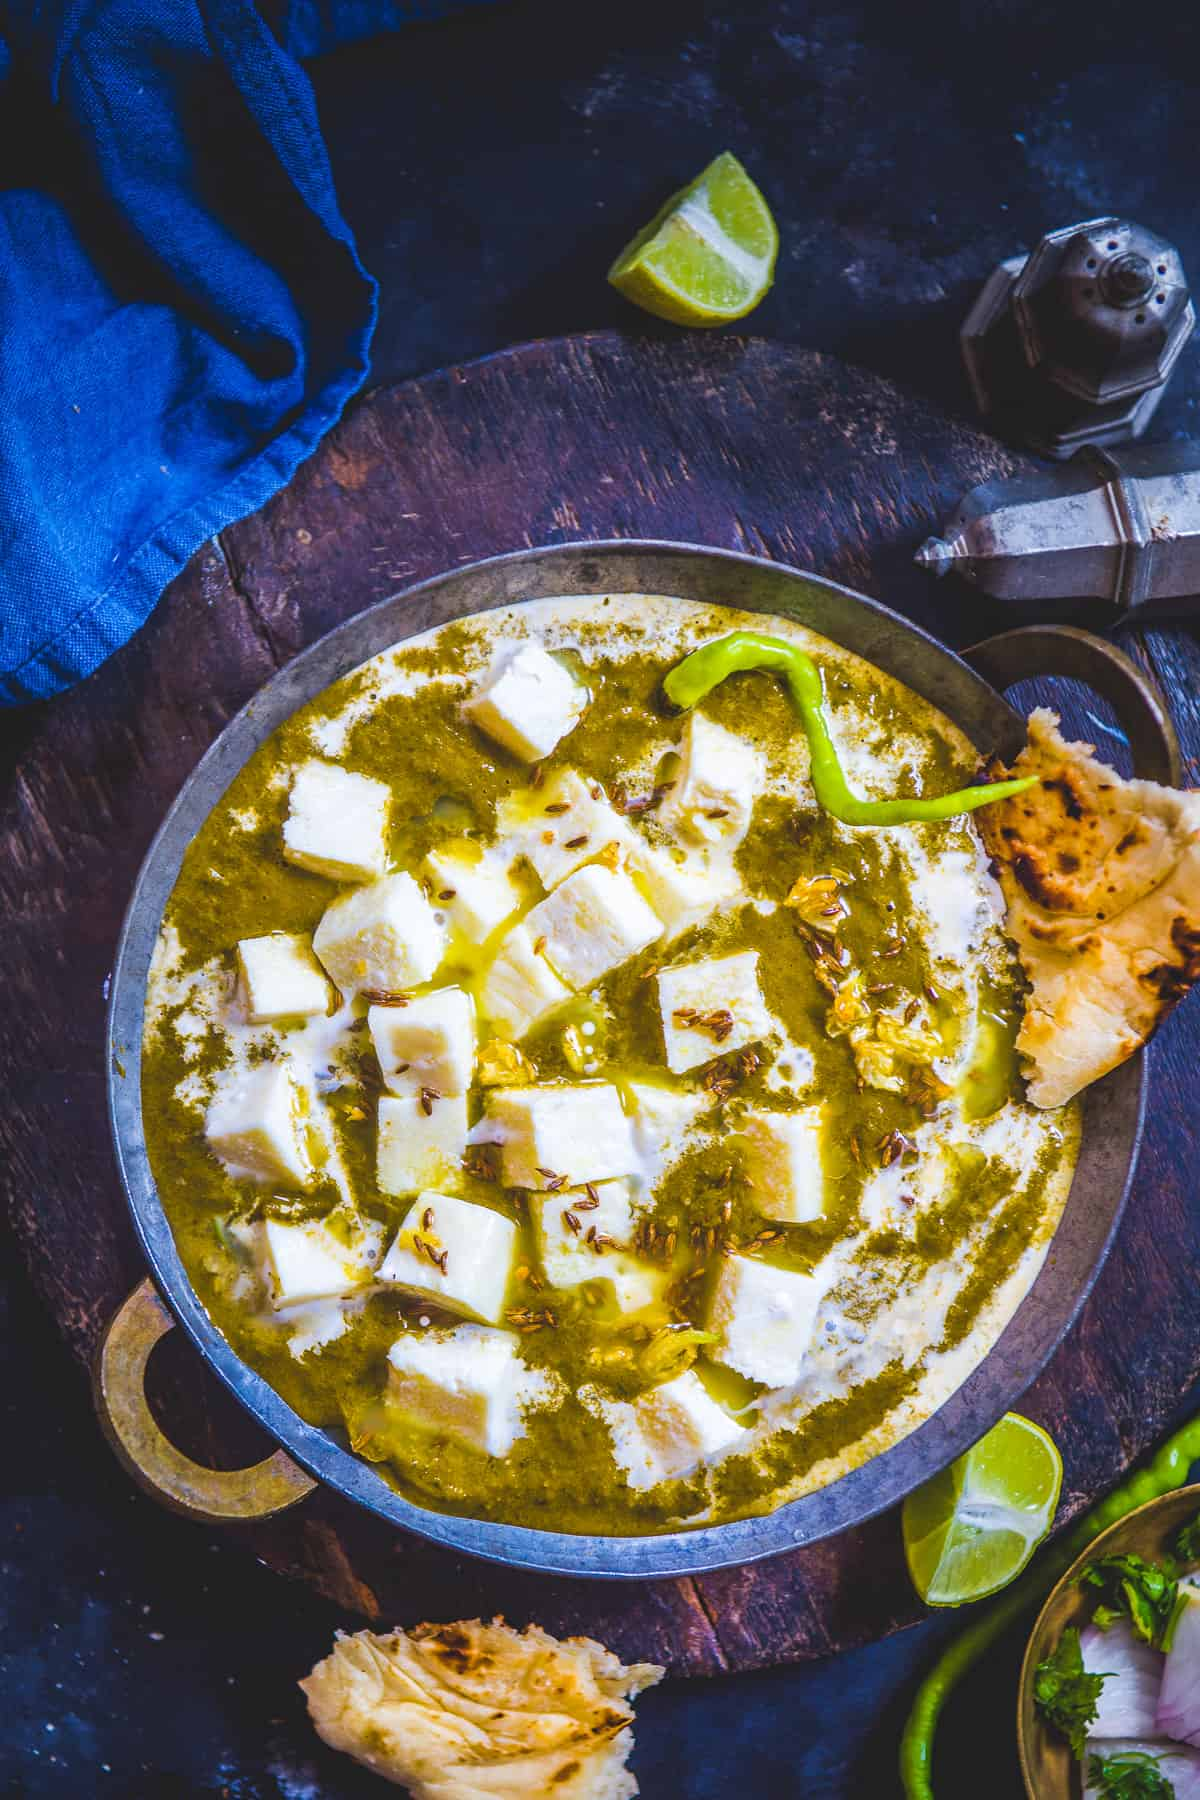 Palak Paneer served in a bowl.